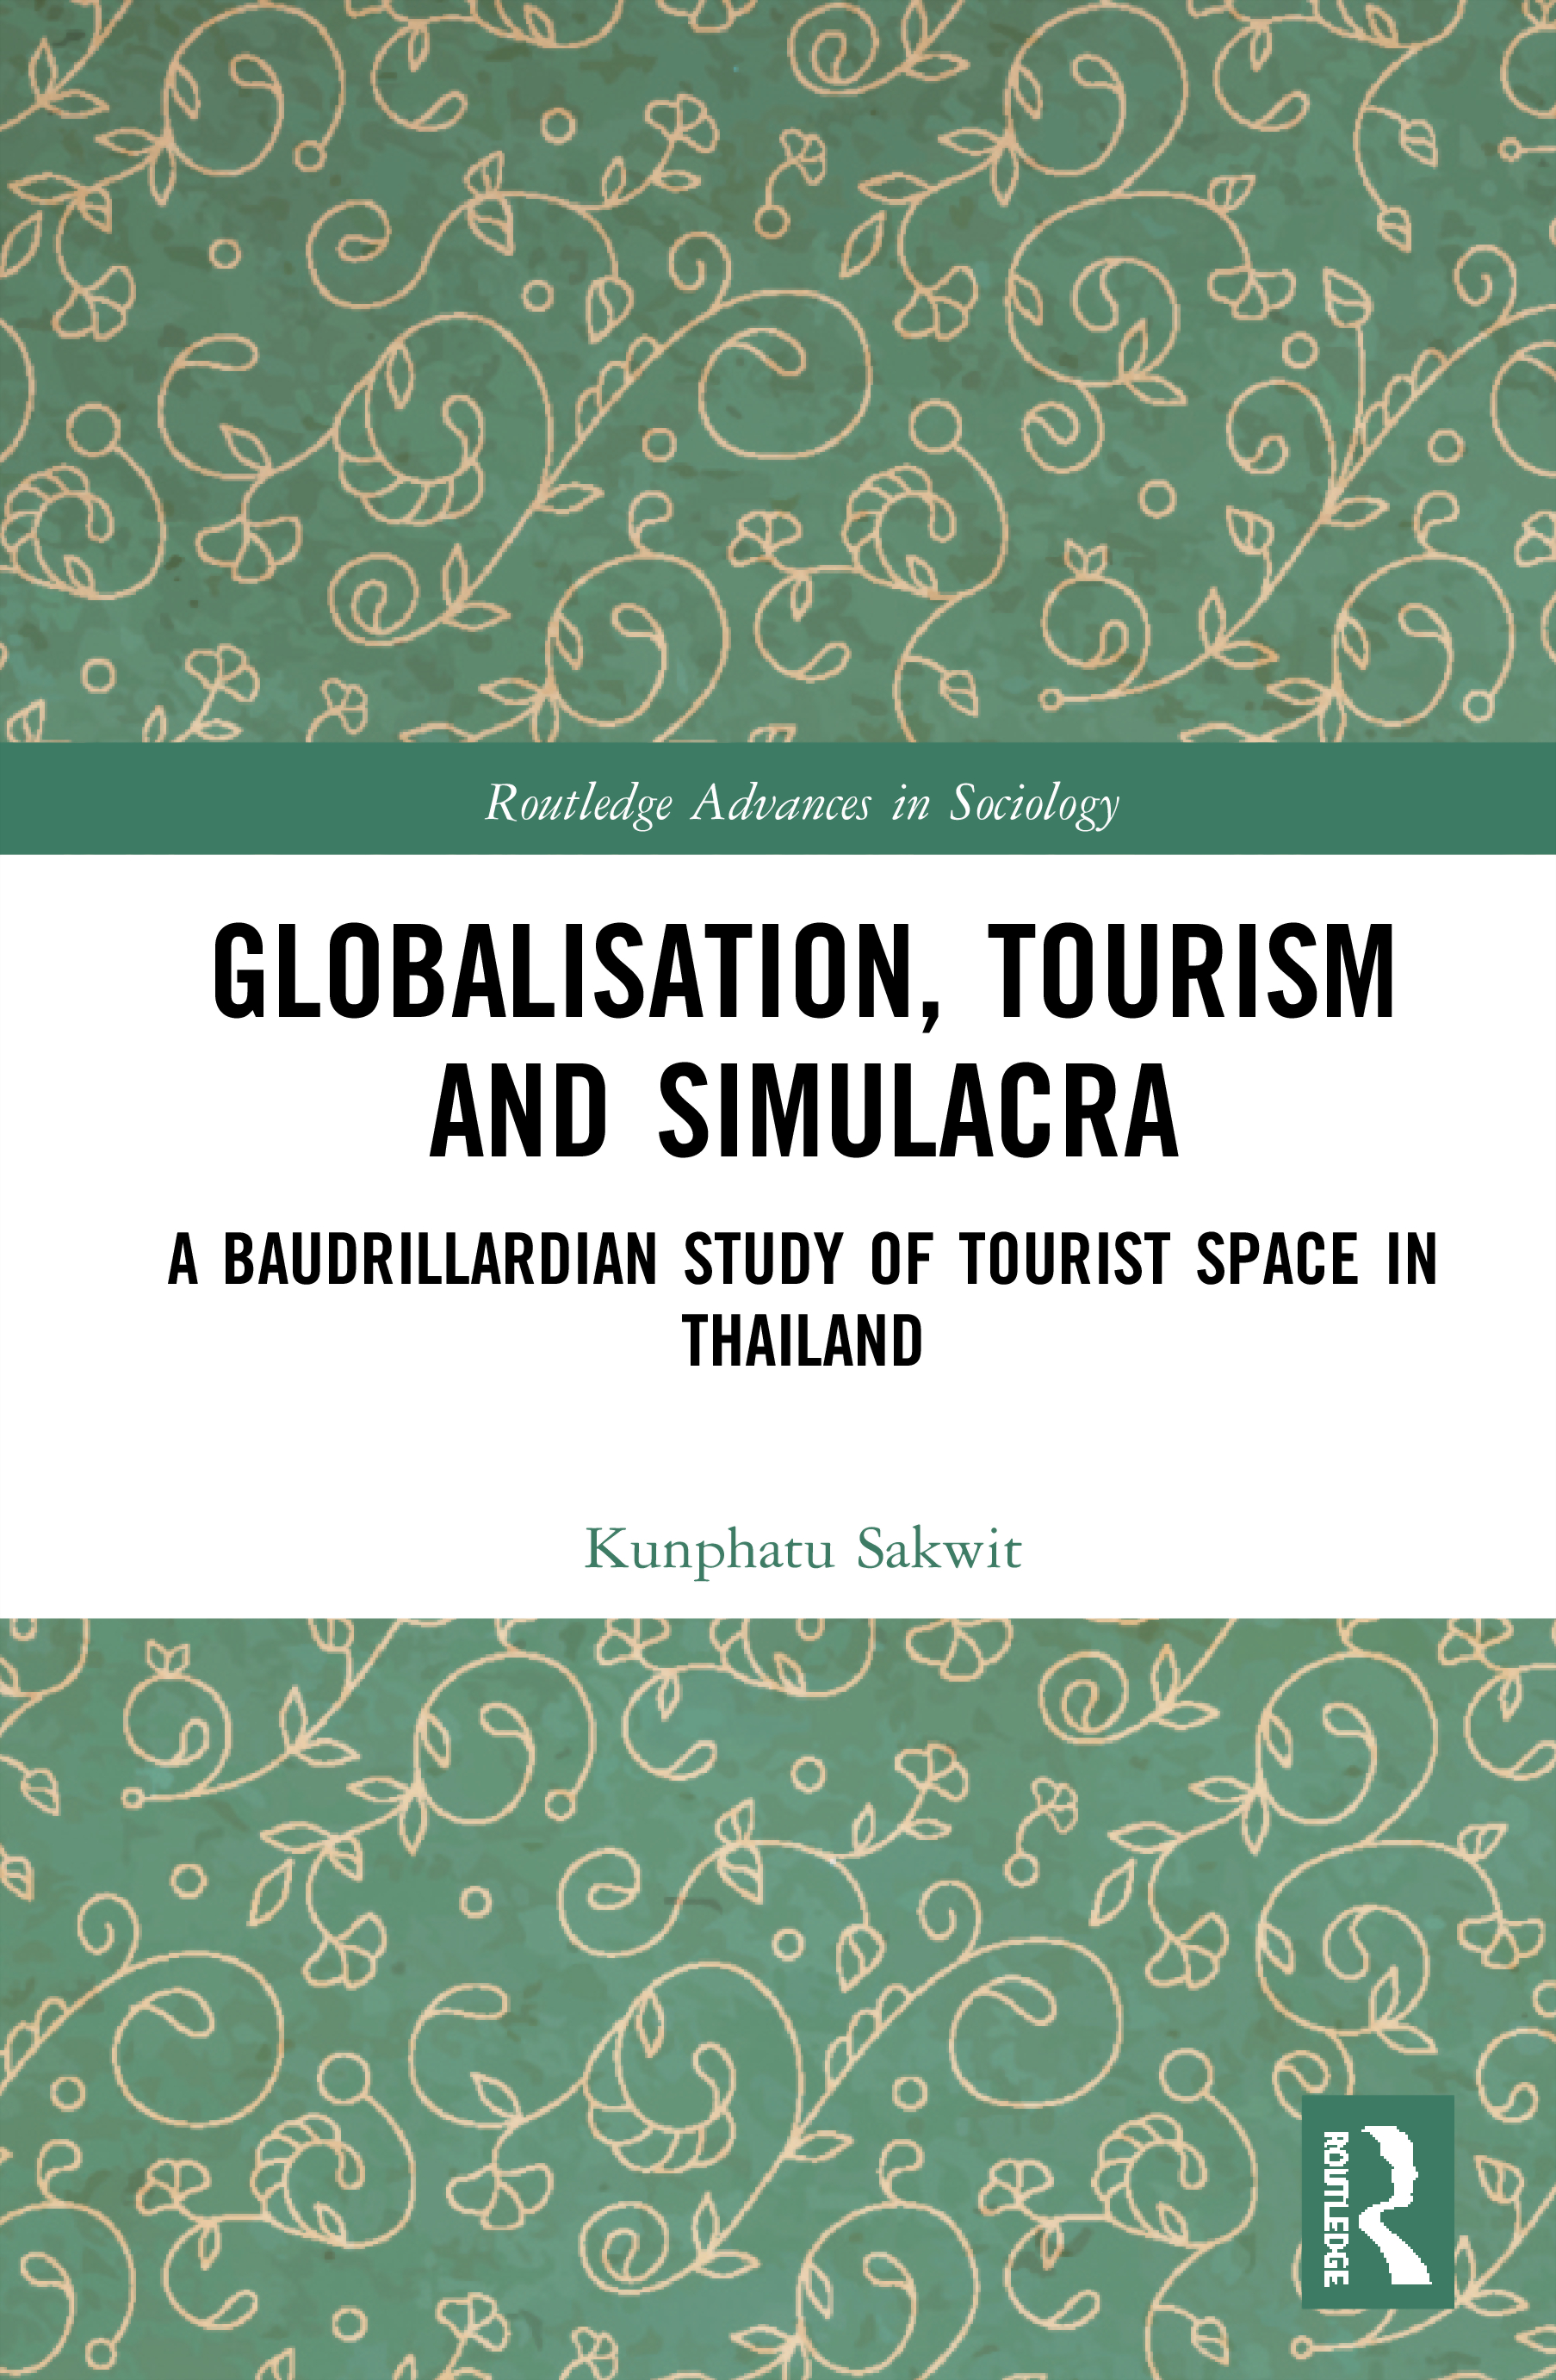 Globalisation, Tourism and Simulacra: A Baudrillardian Study of Tourist Space in Thailand book cover